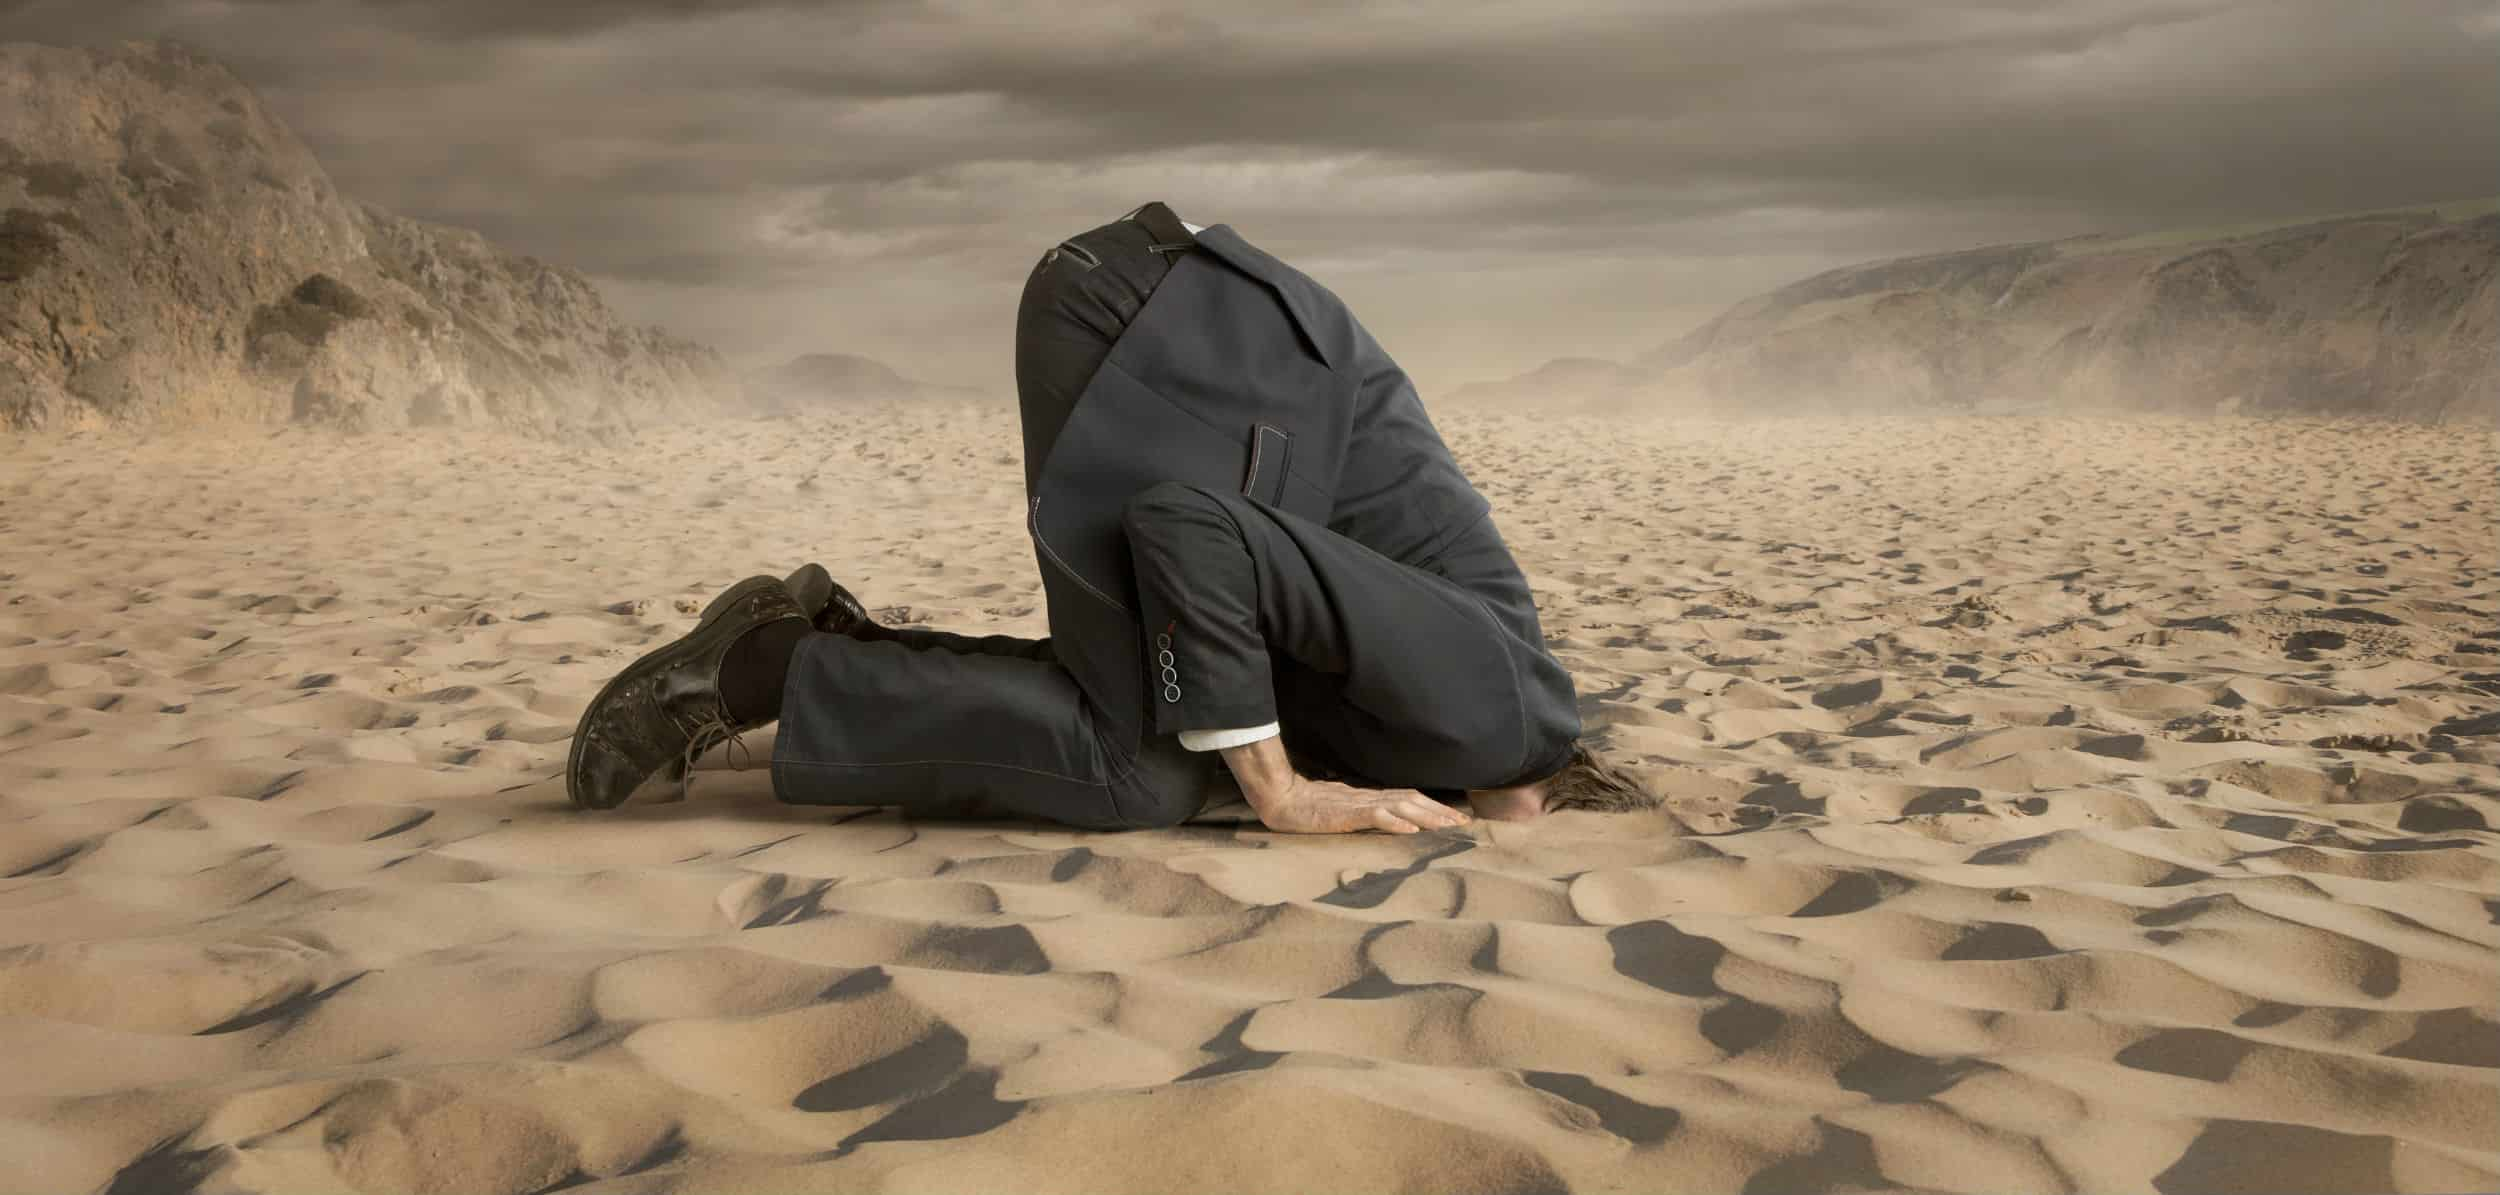 health care can't bury their head in the sand